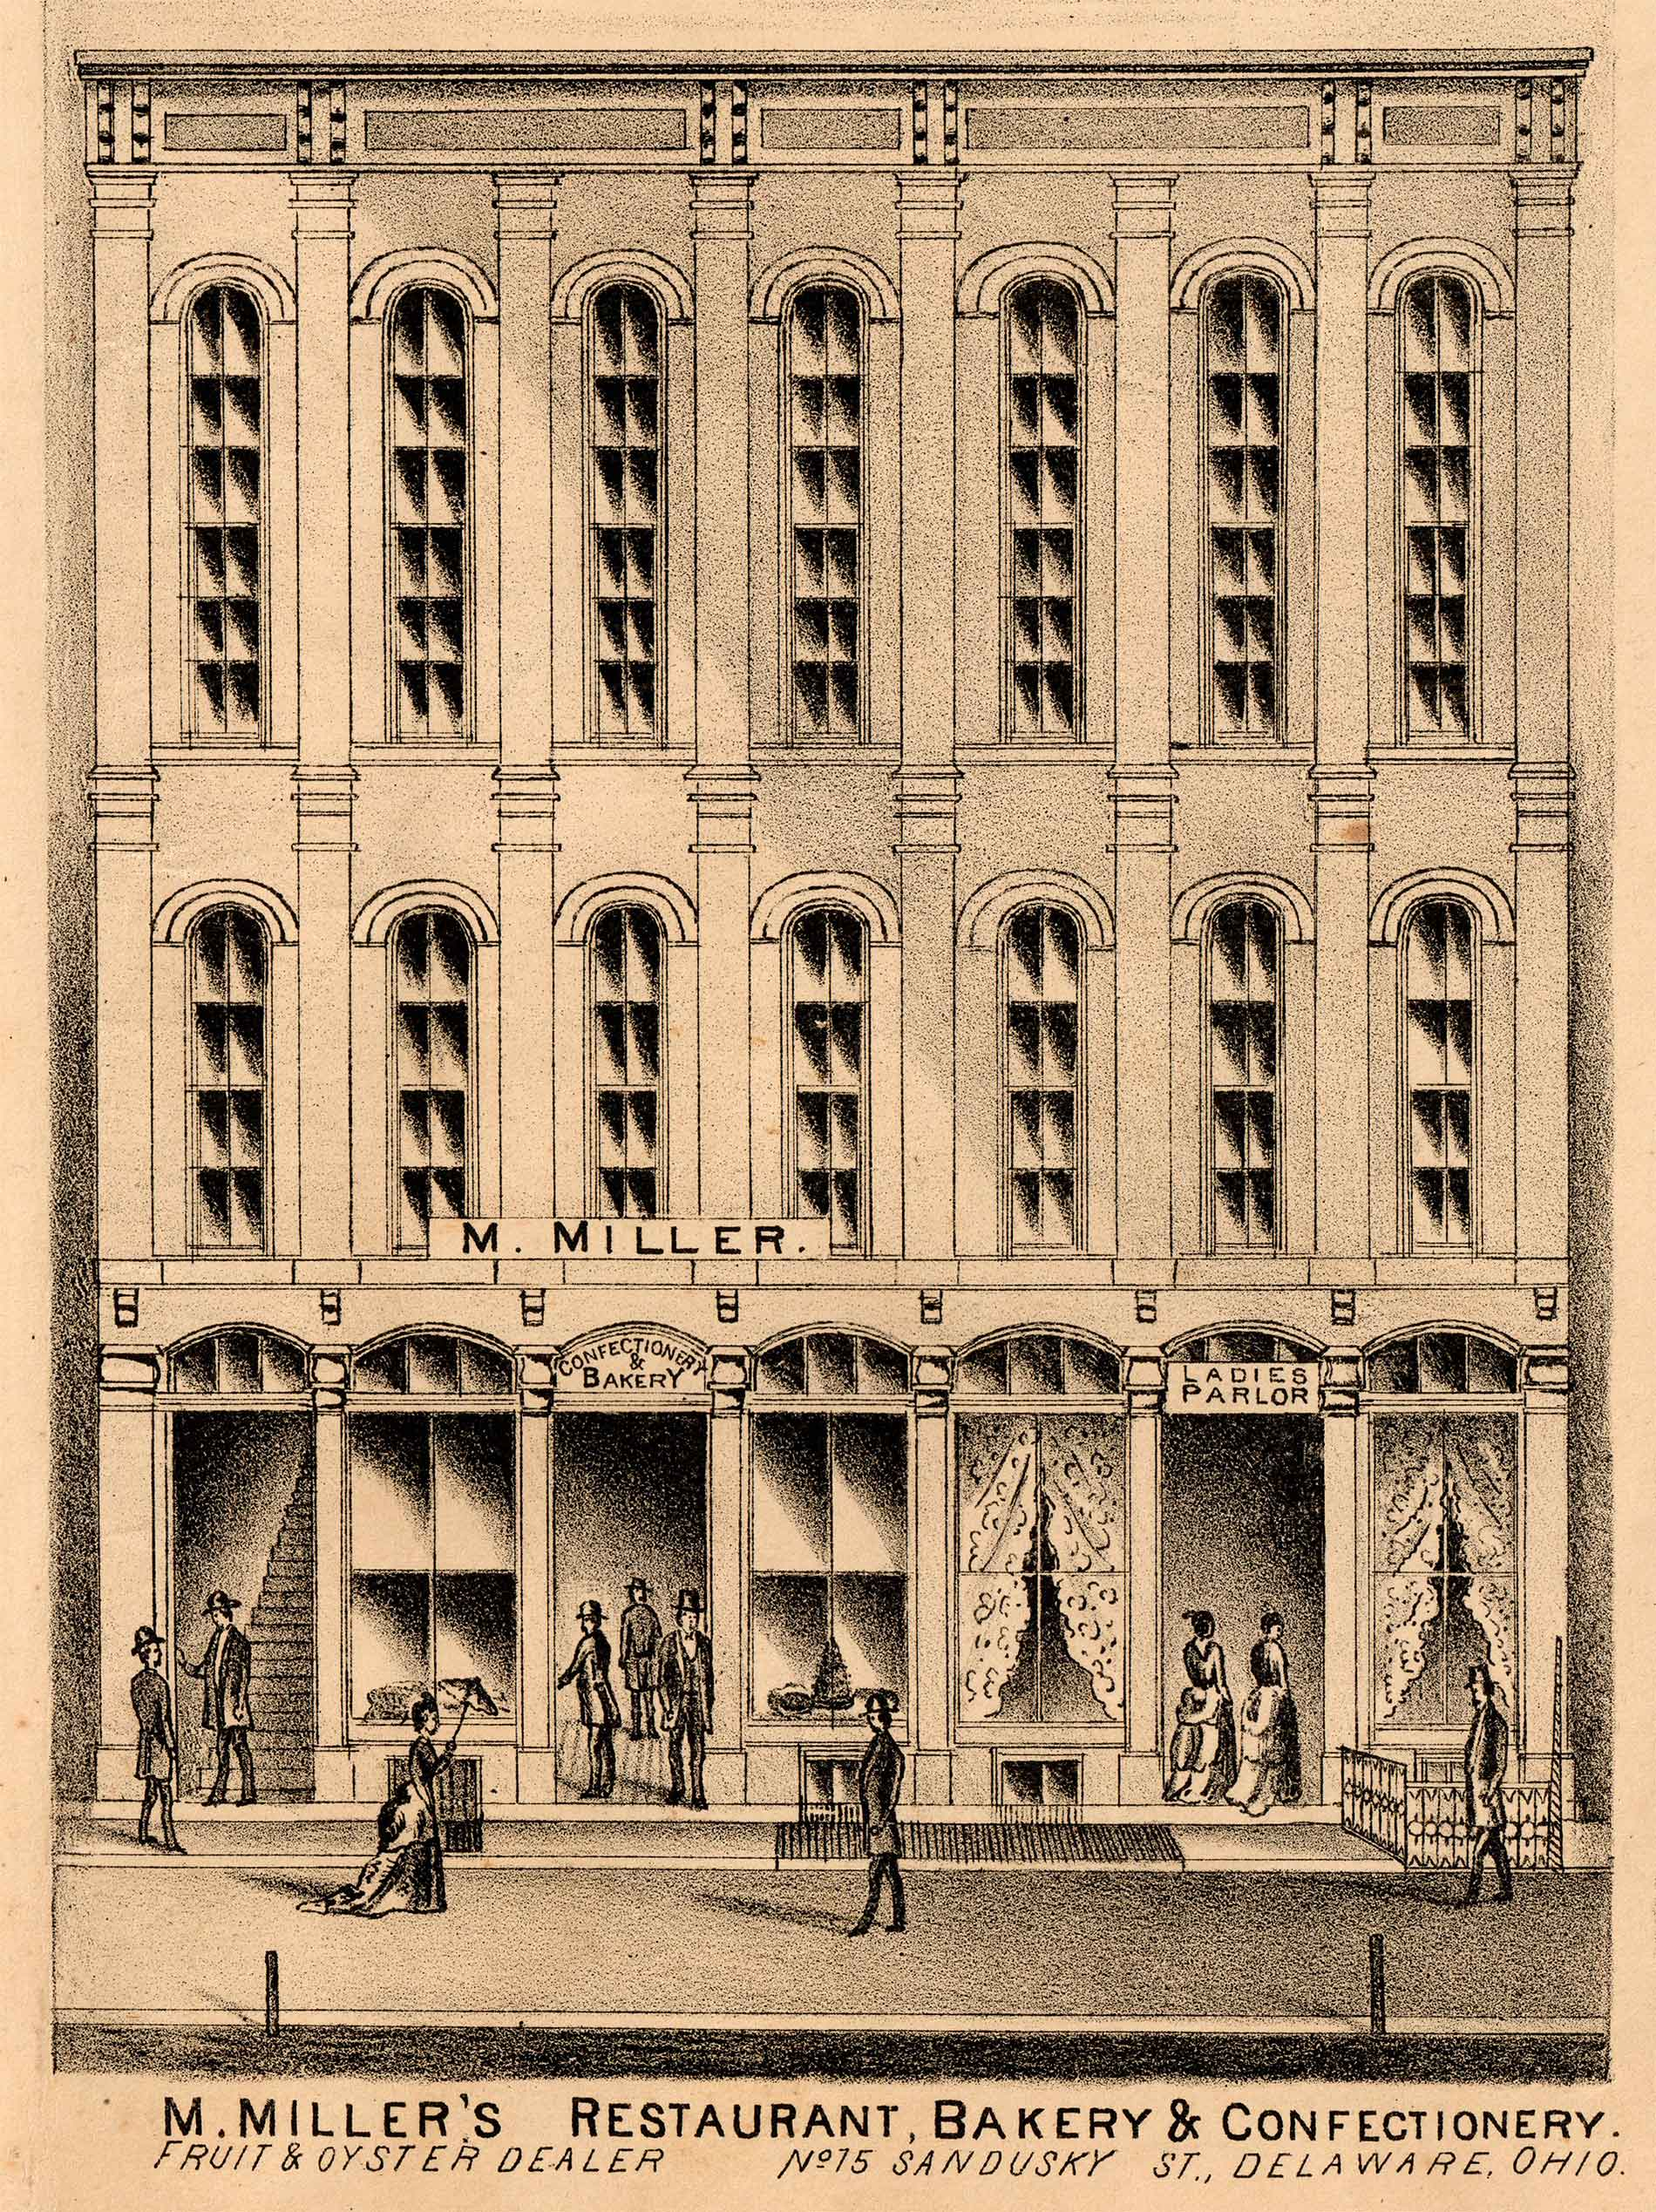 fig. 7 _ Commercial building on North Sandusky Street from a 19th century atlas